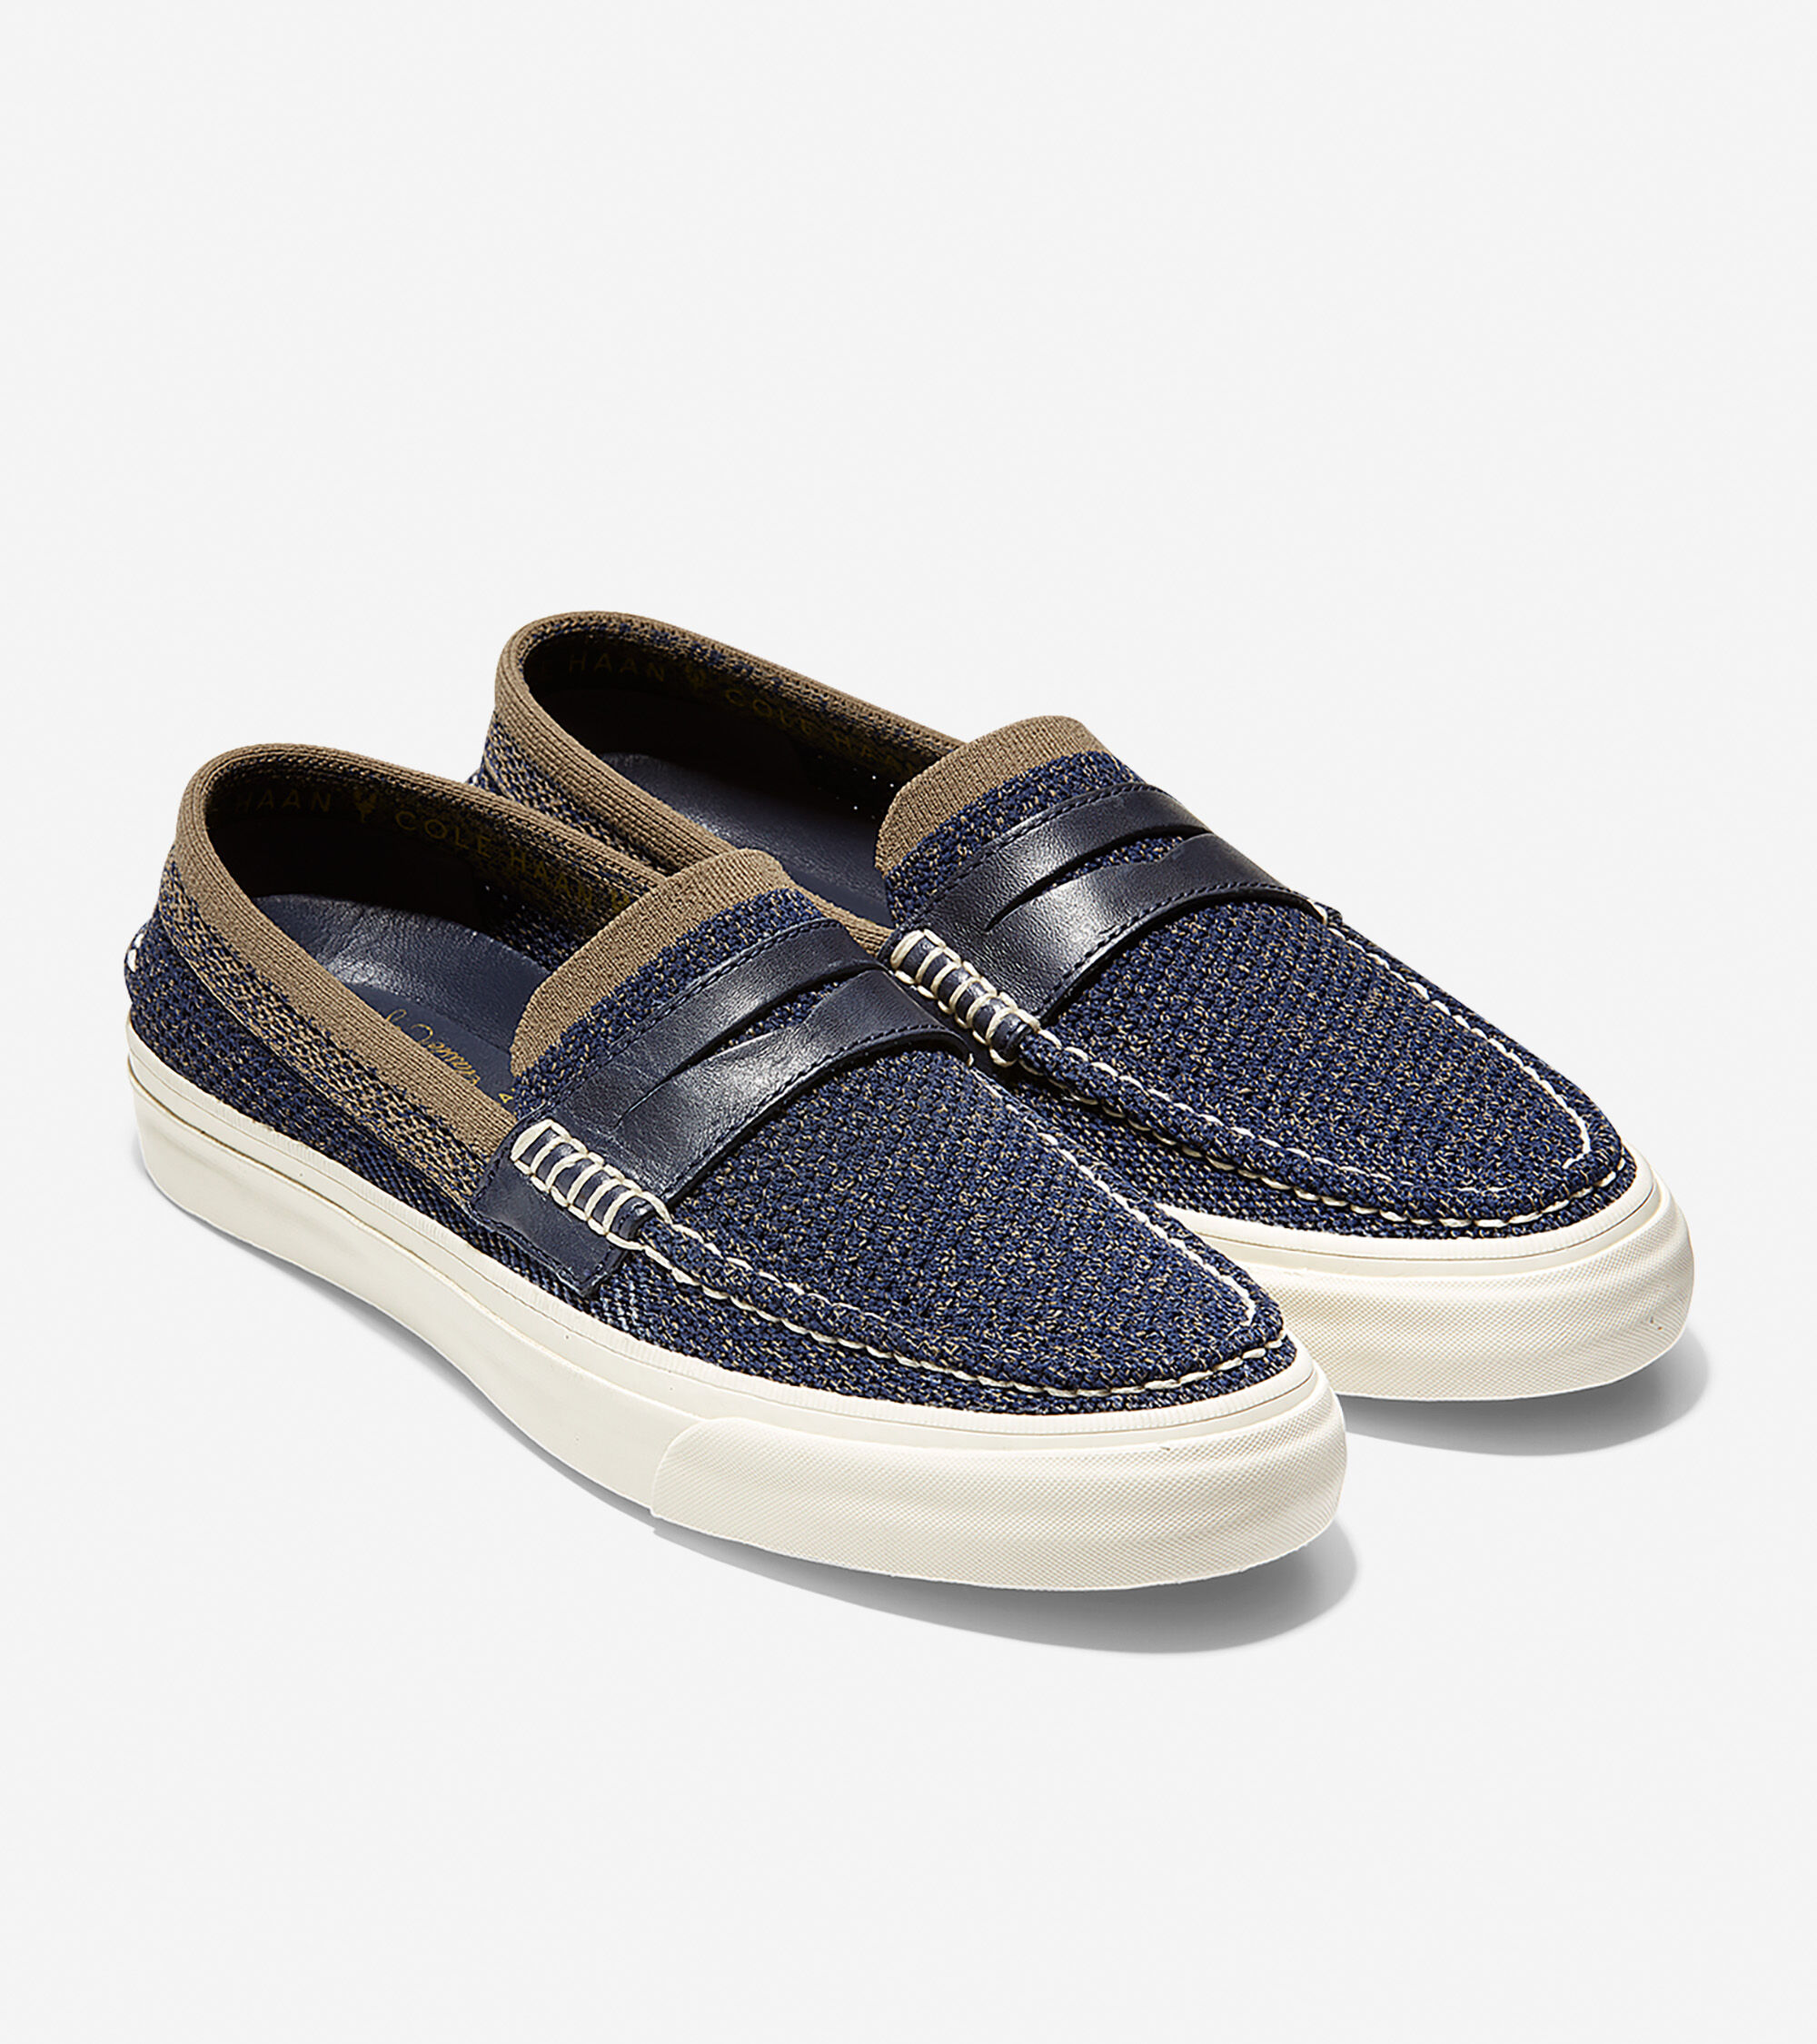 1222146c729 Men s Pinch Weekender LX Loafers with Stitchlite in Navy